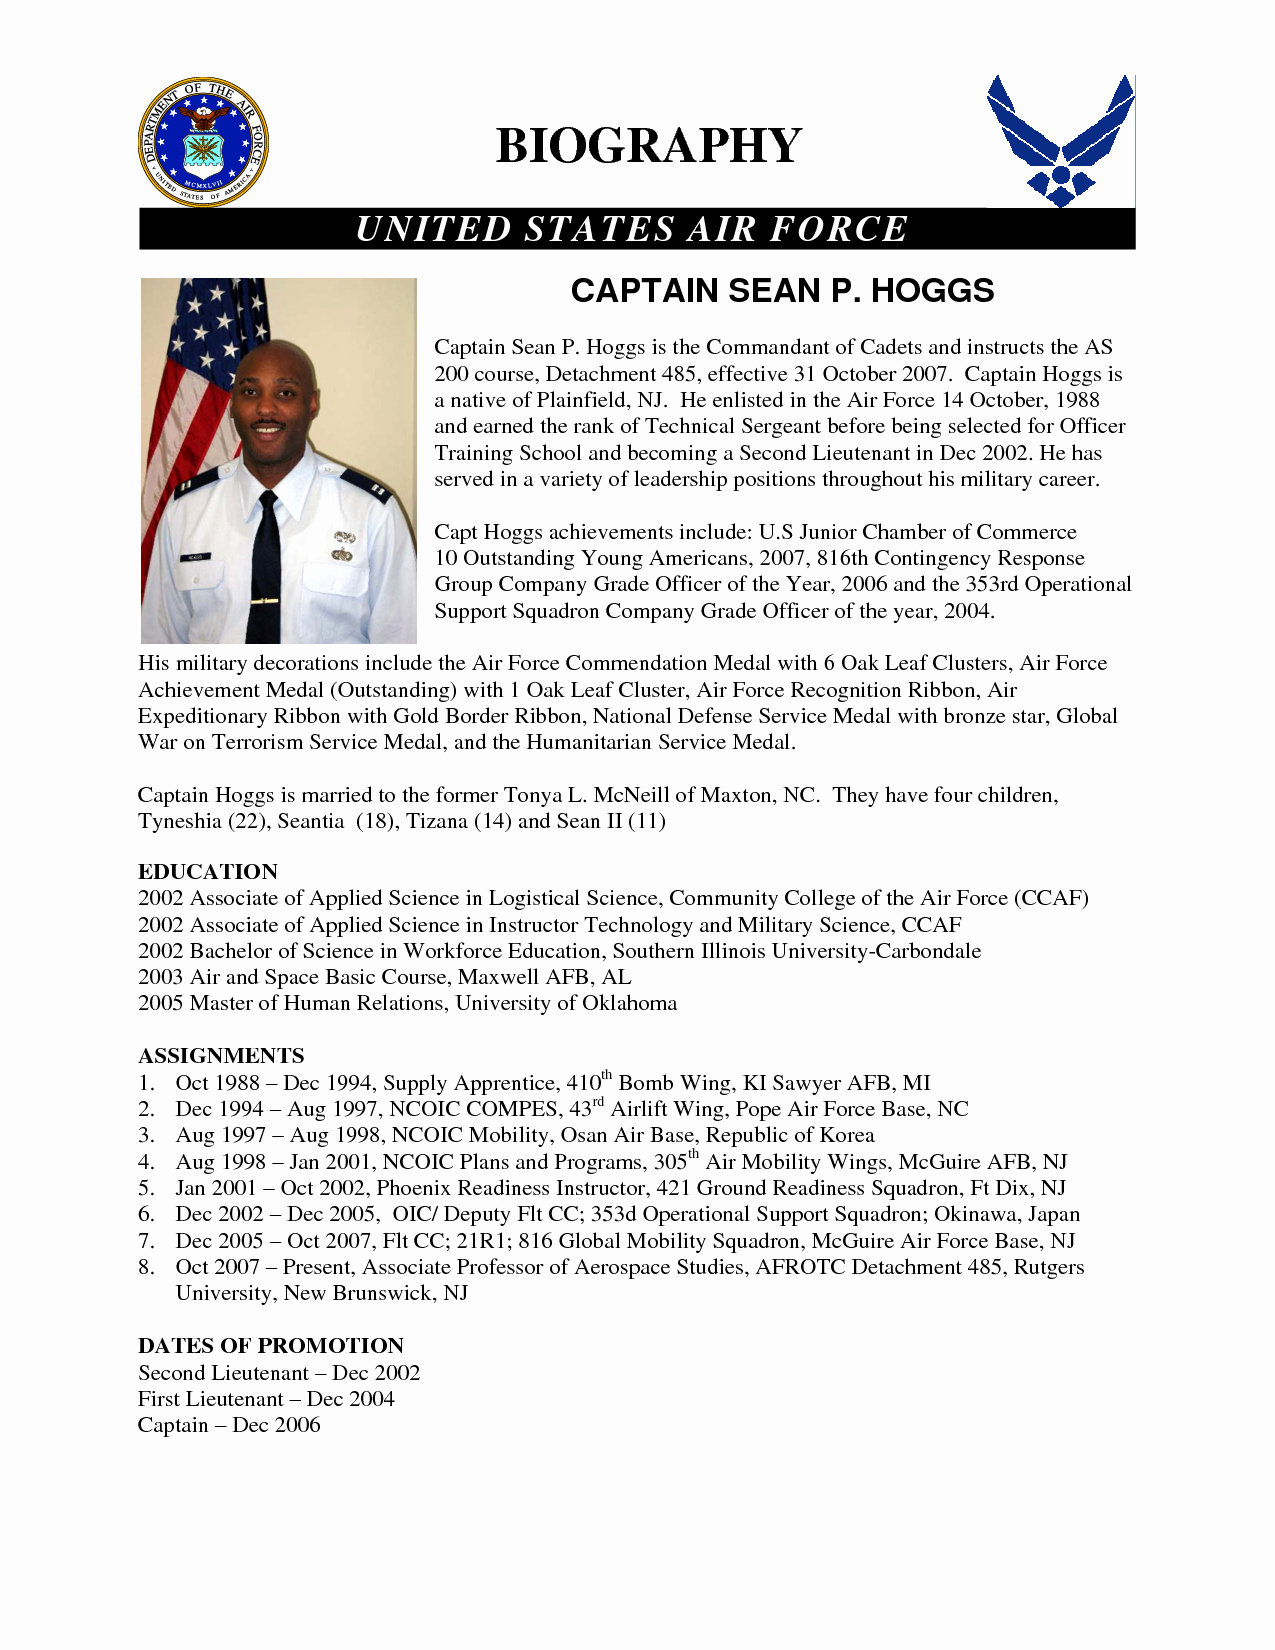 Army Board Biography Example Unique 24 Of Army Biography Template